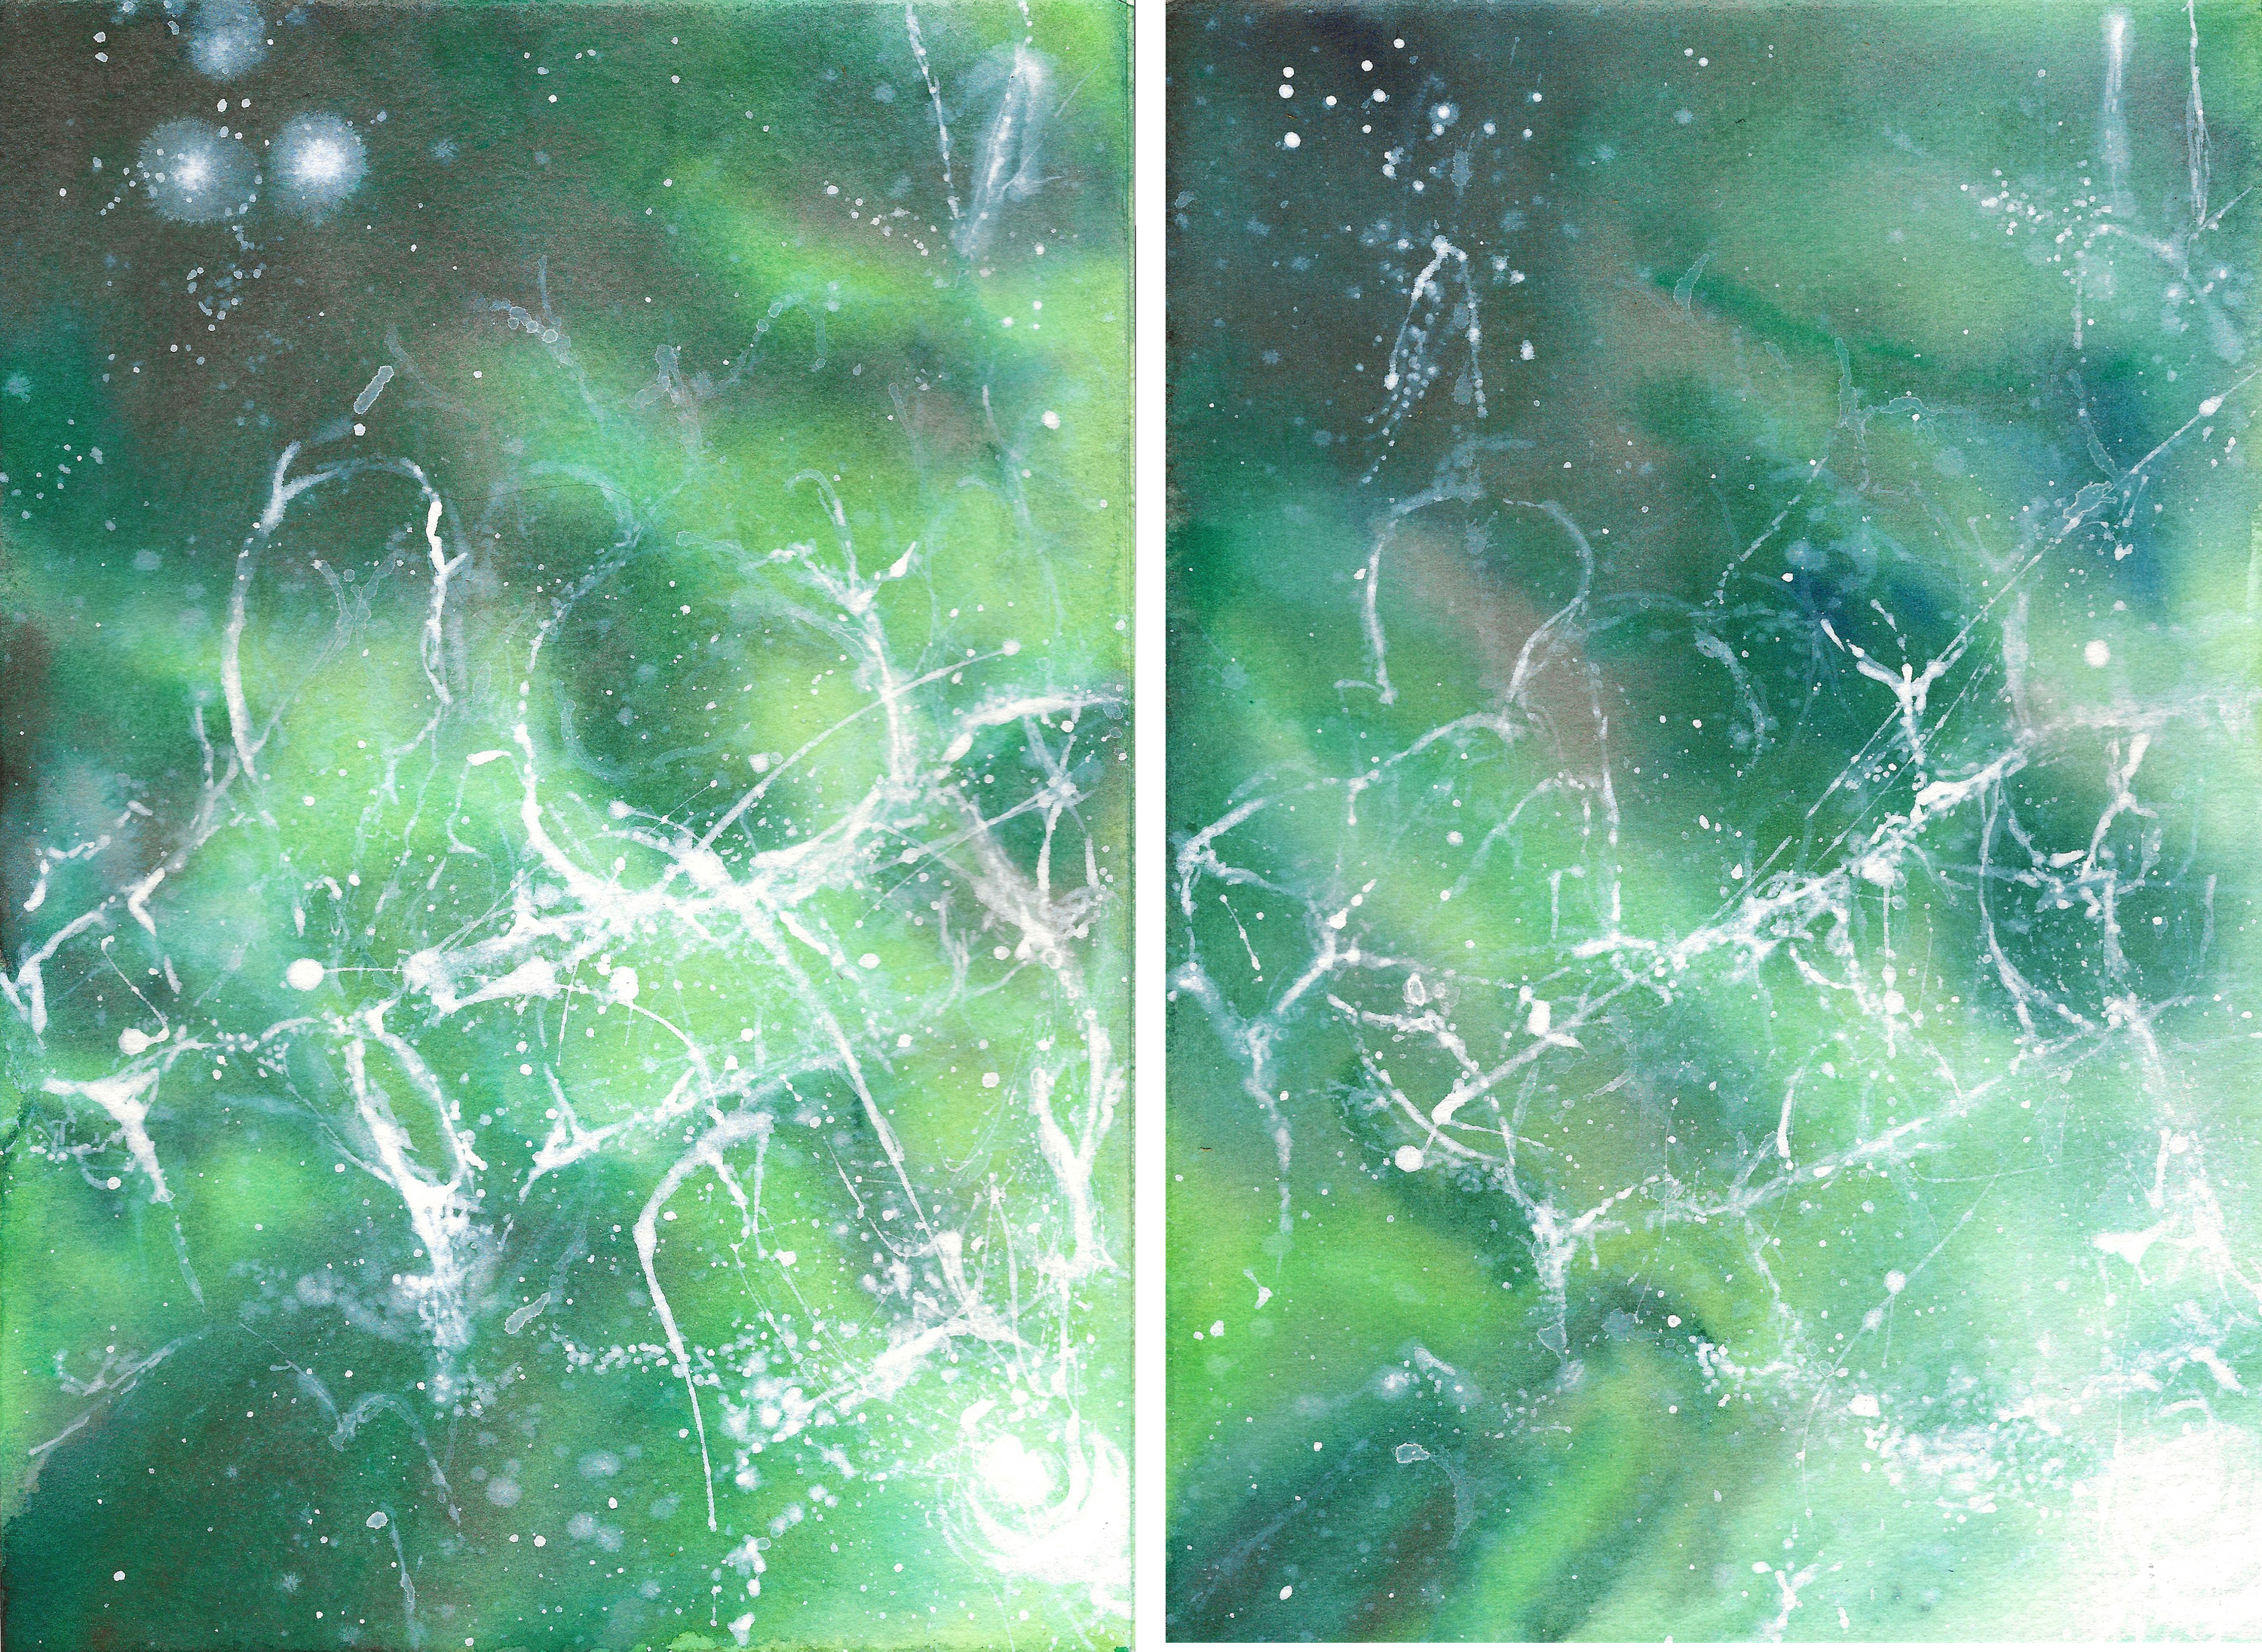 diptych bc ferries 5 + 6 - watercolour and gouache - 210 x 297mm ish - 640gsm 300lbs